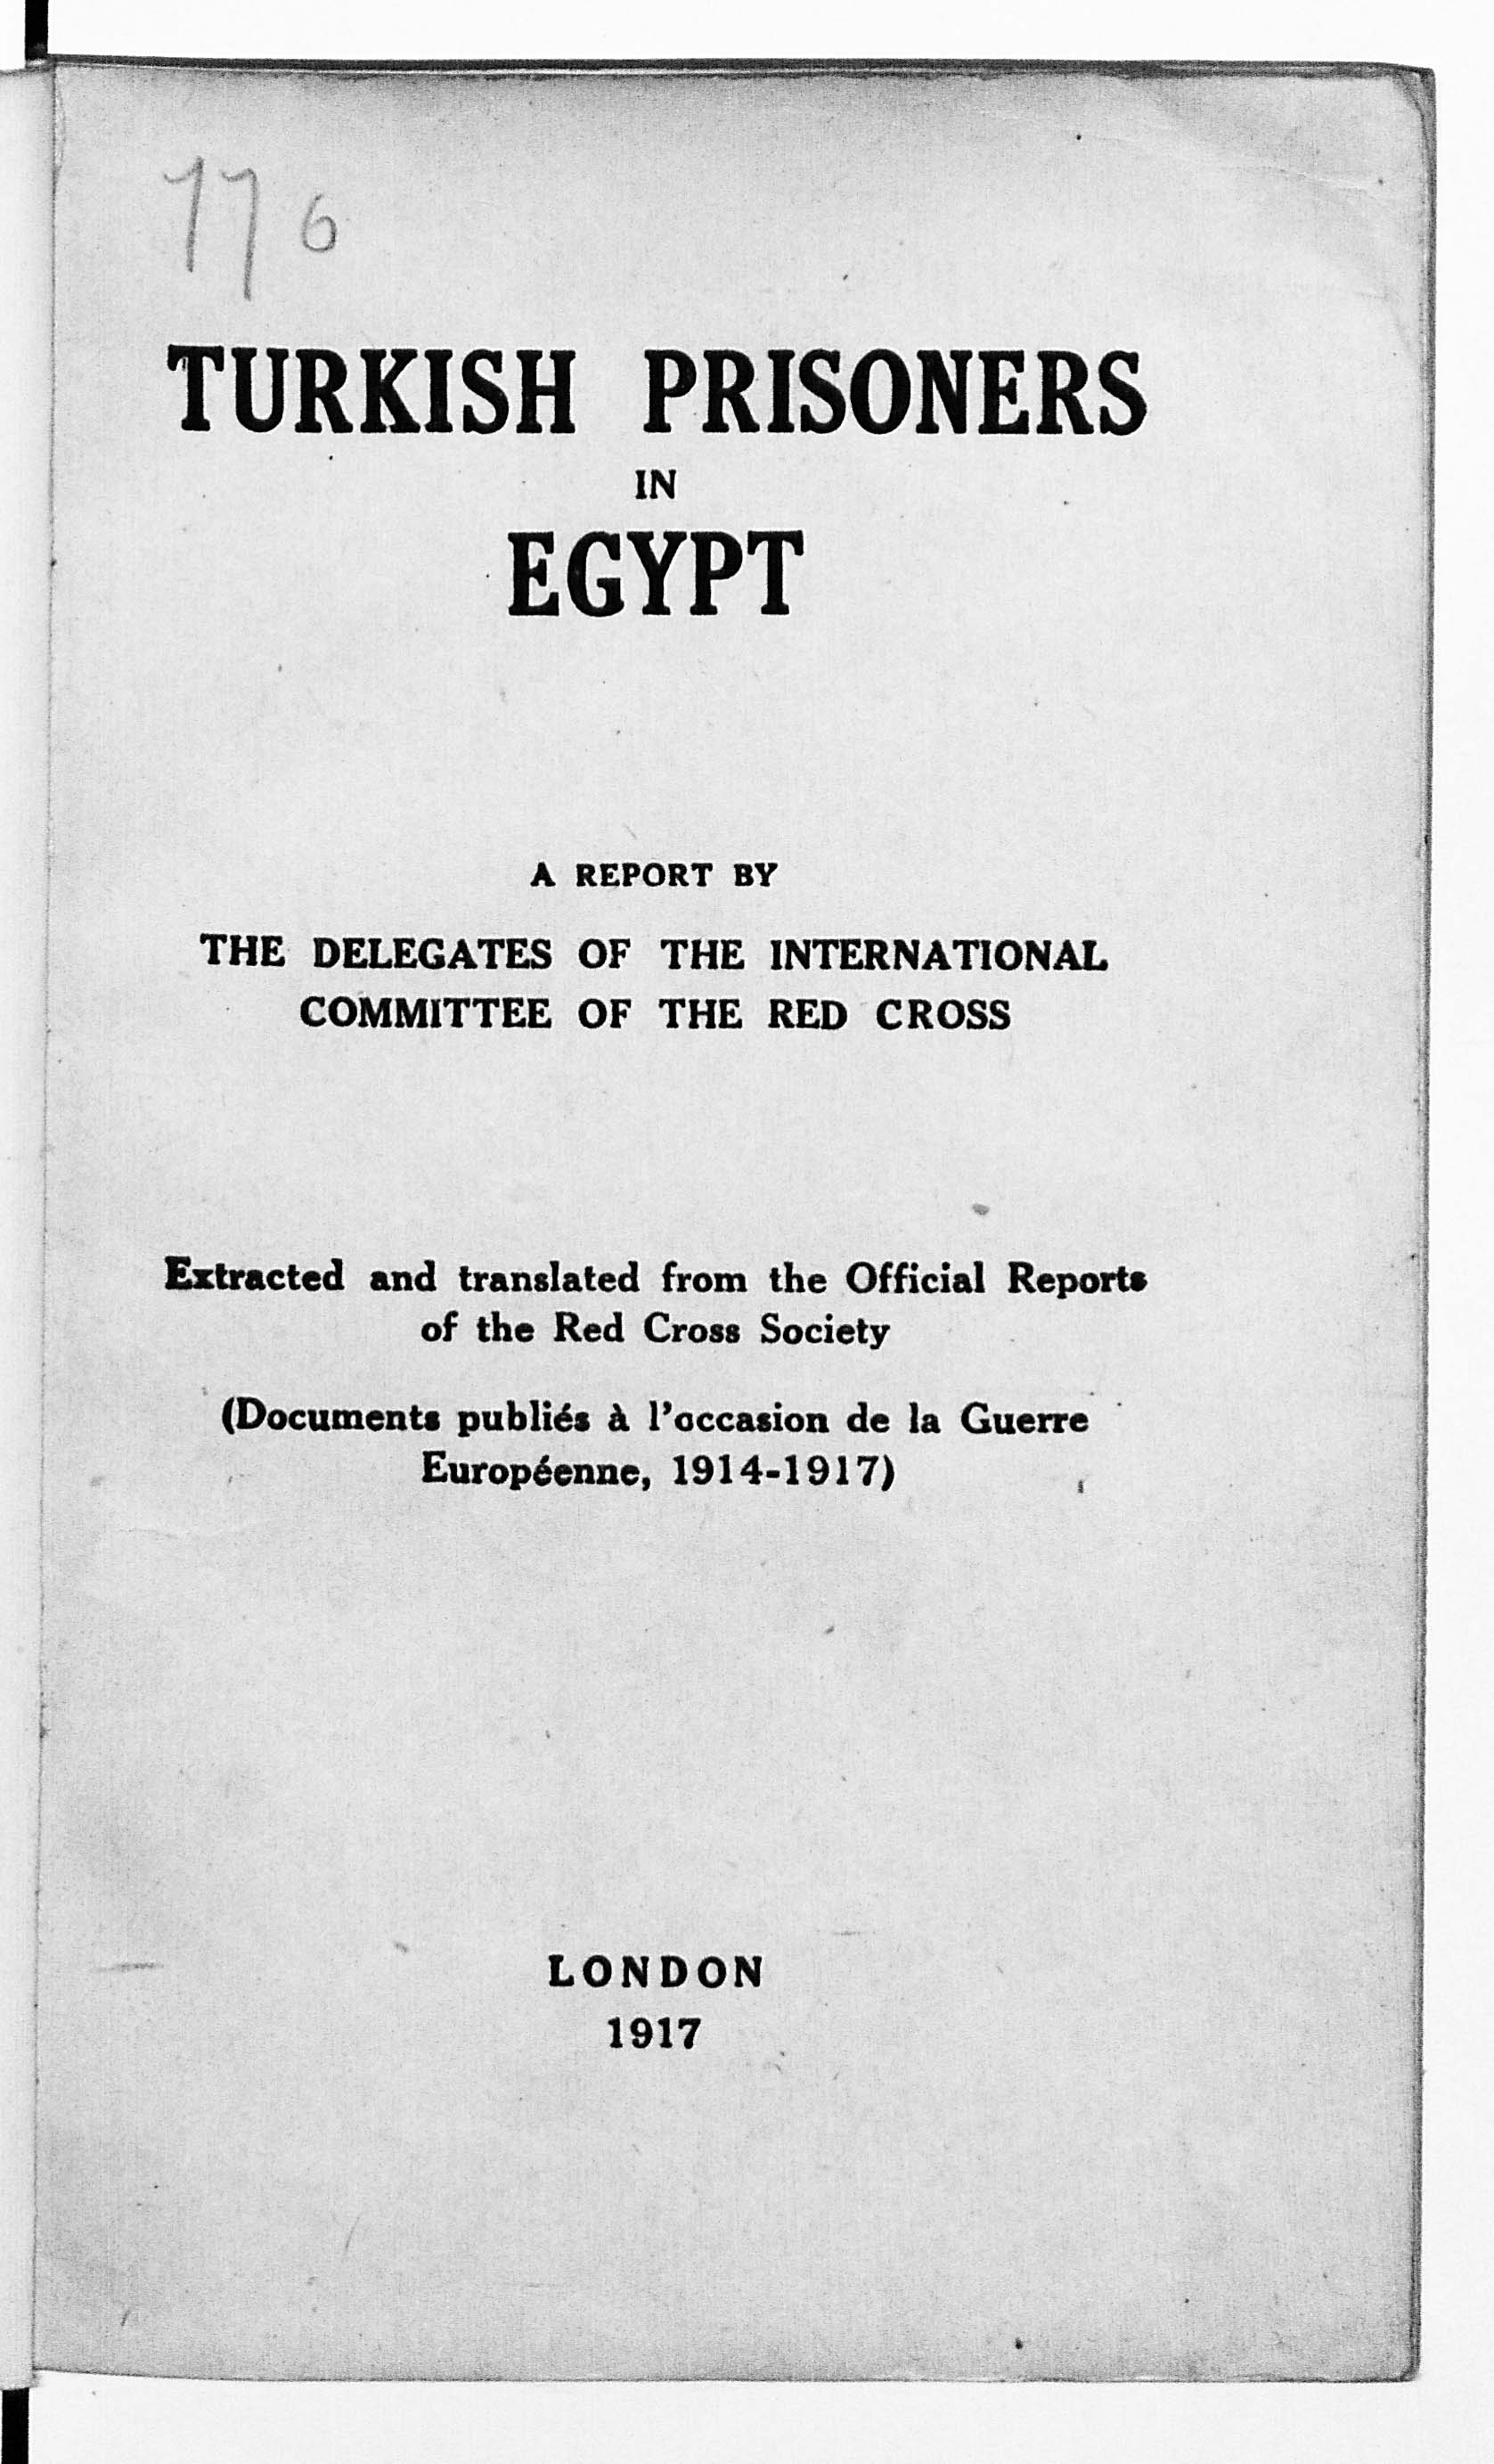 Turkish Prisoners in Egypt. A 1917 report by the delegates of the International Committee of the Red Cross.